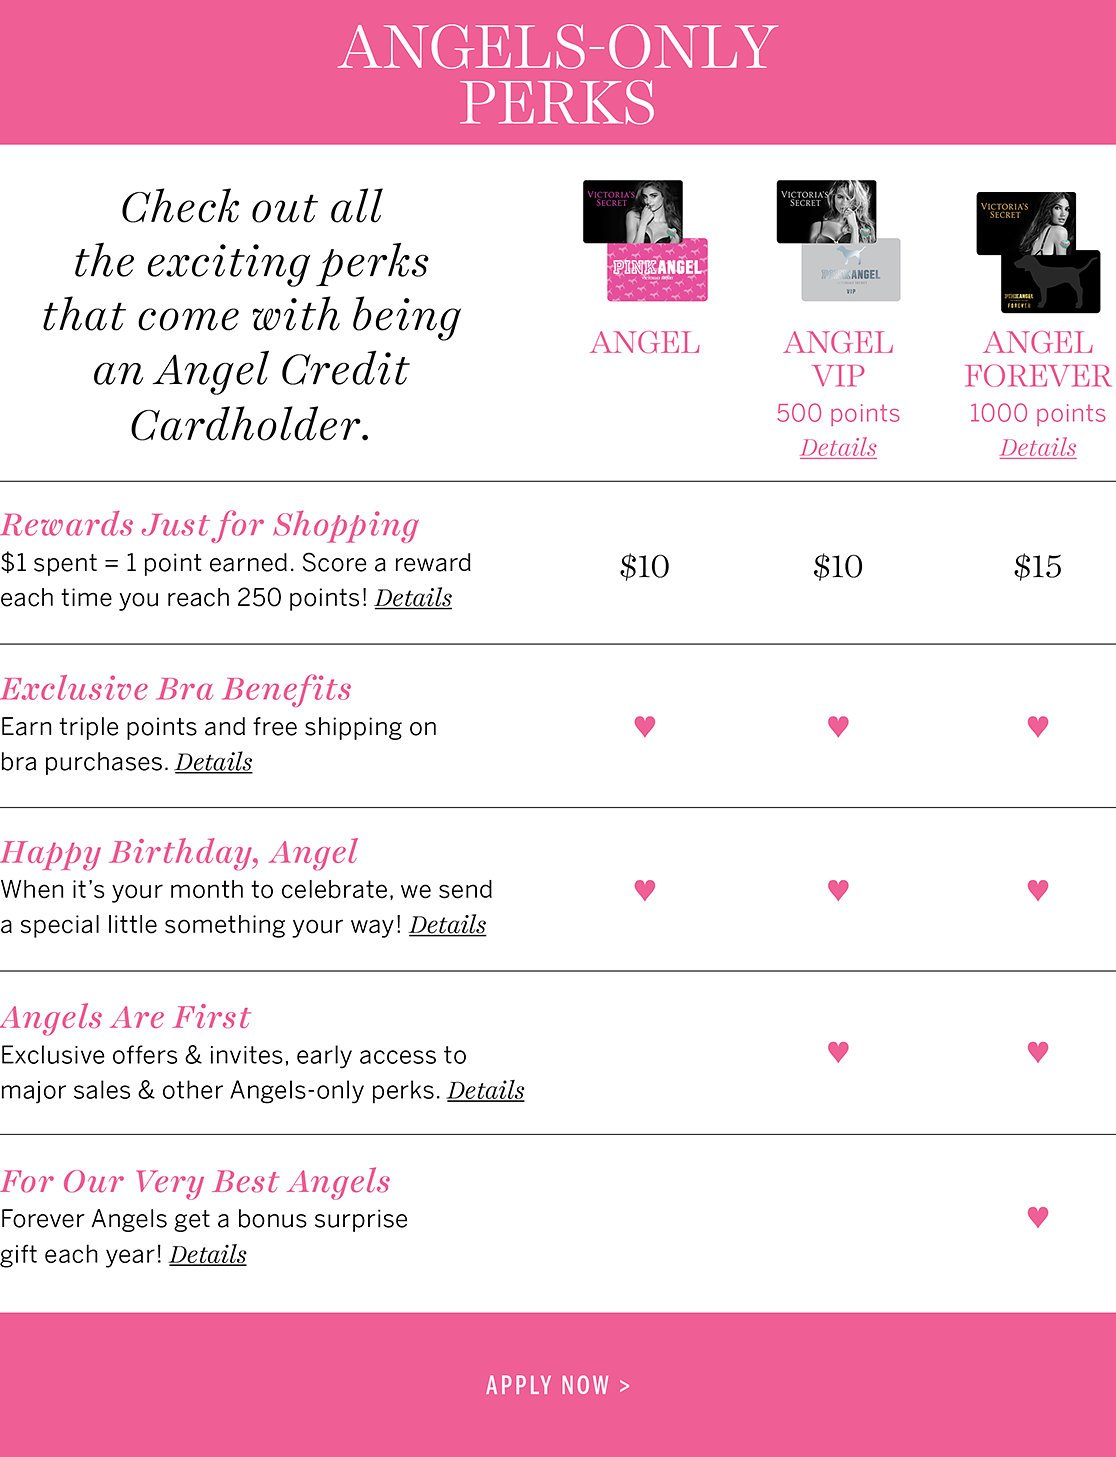 99ad6484b1 Angels-Only Perks. Check out all the exciting perks that come with being an  Angel Credit Cardholder. Angel VIP - 500 Points. Click for details.